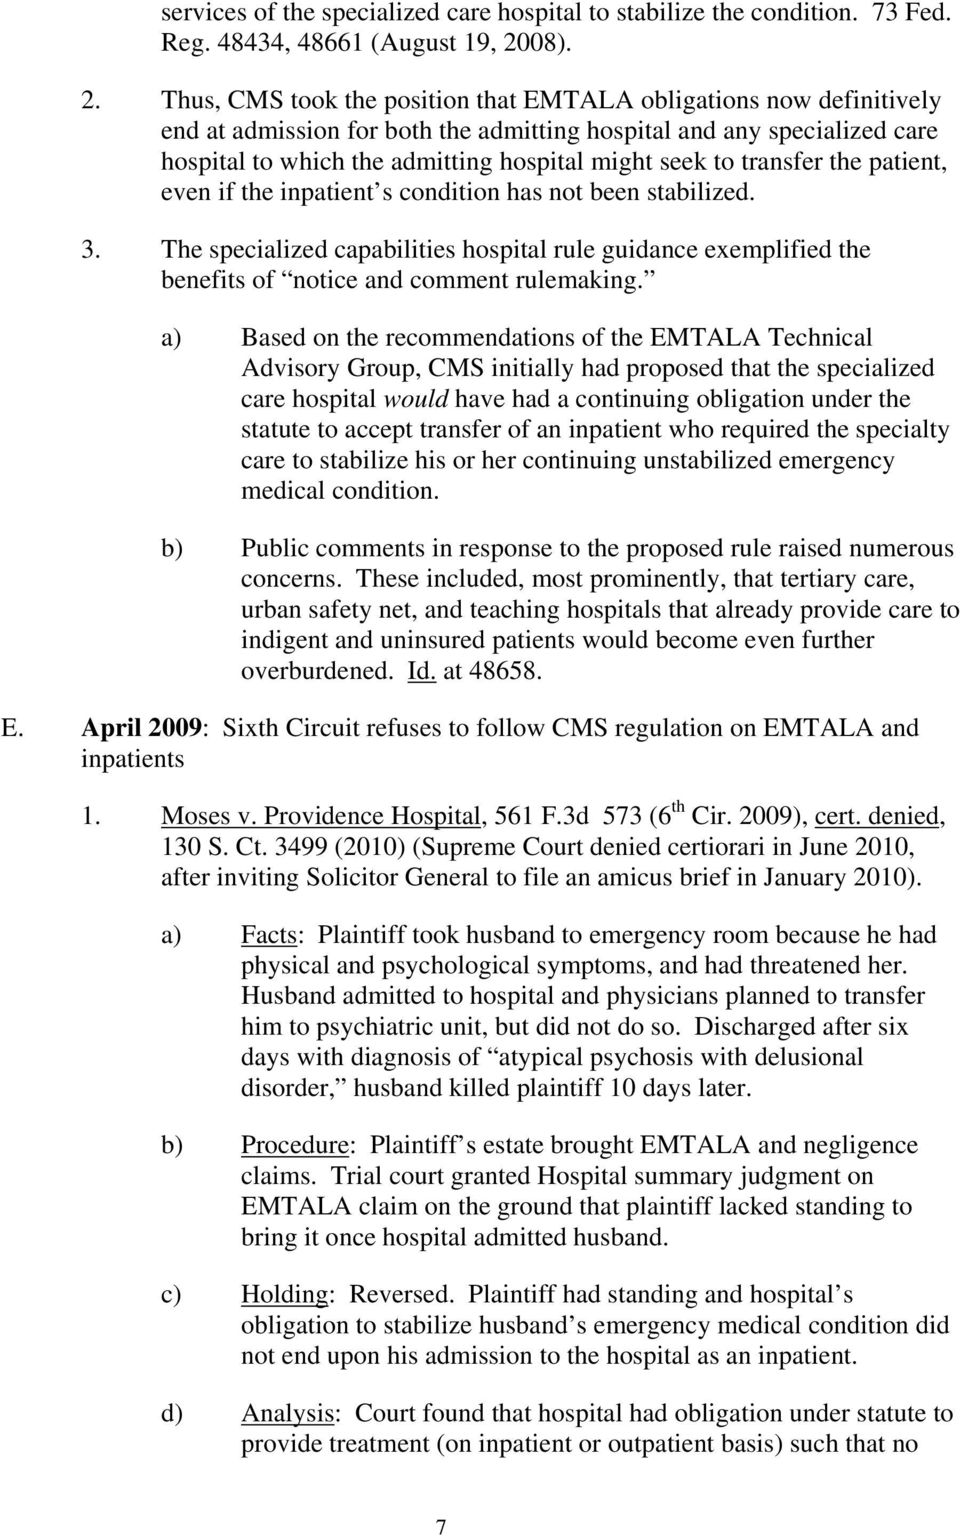 Thus, CMS took the position that EMTALA obligations now definitively end at admission for both the admitting hospital and any specialized care hospital to which the admitting hospital might seek to